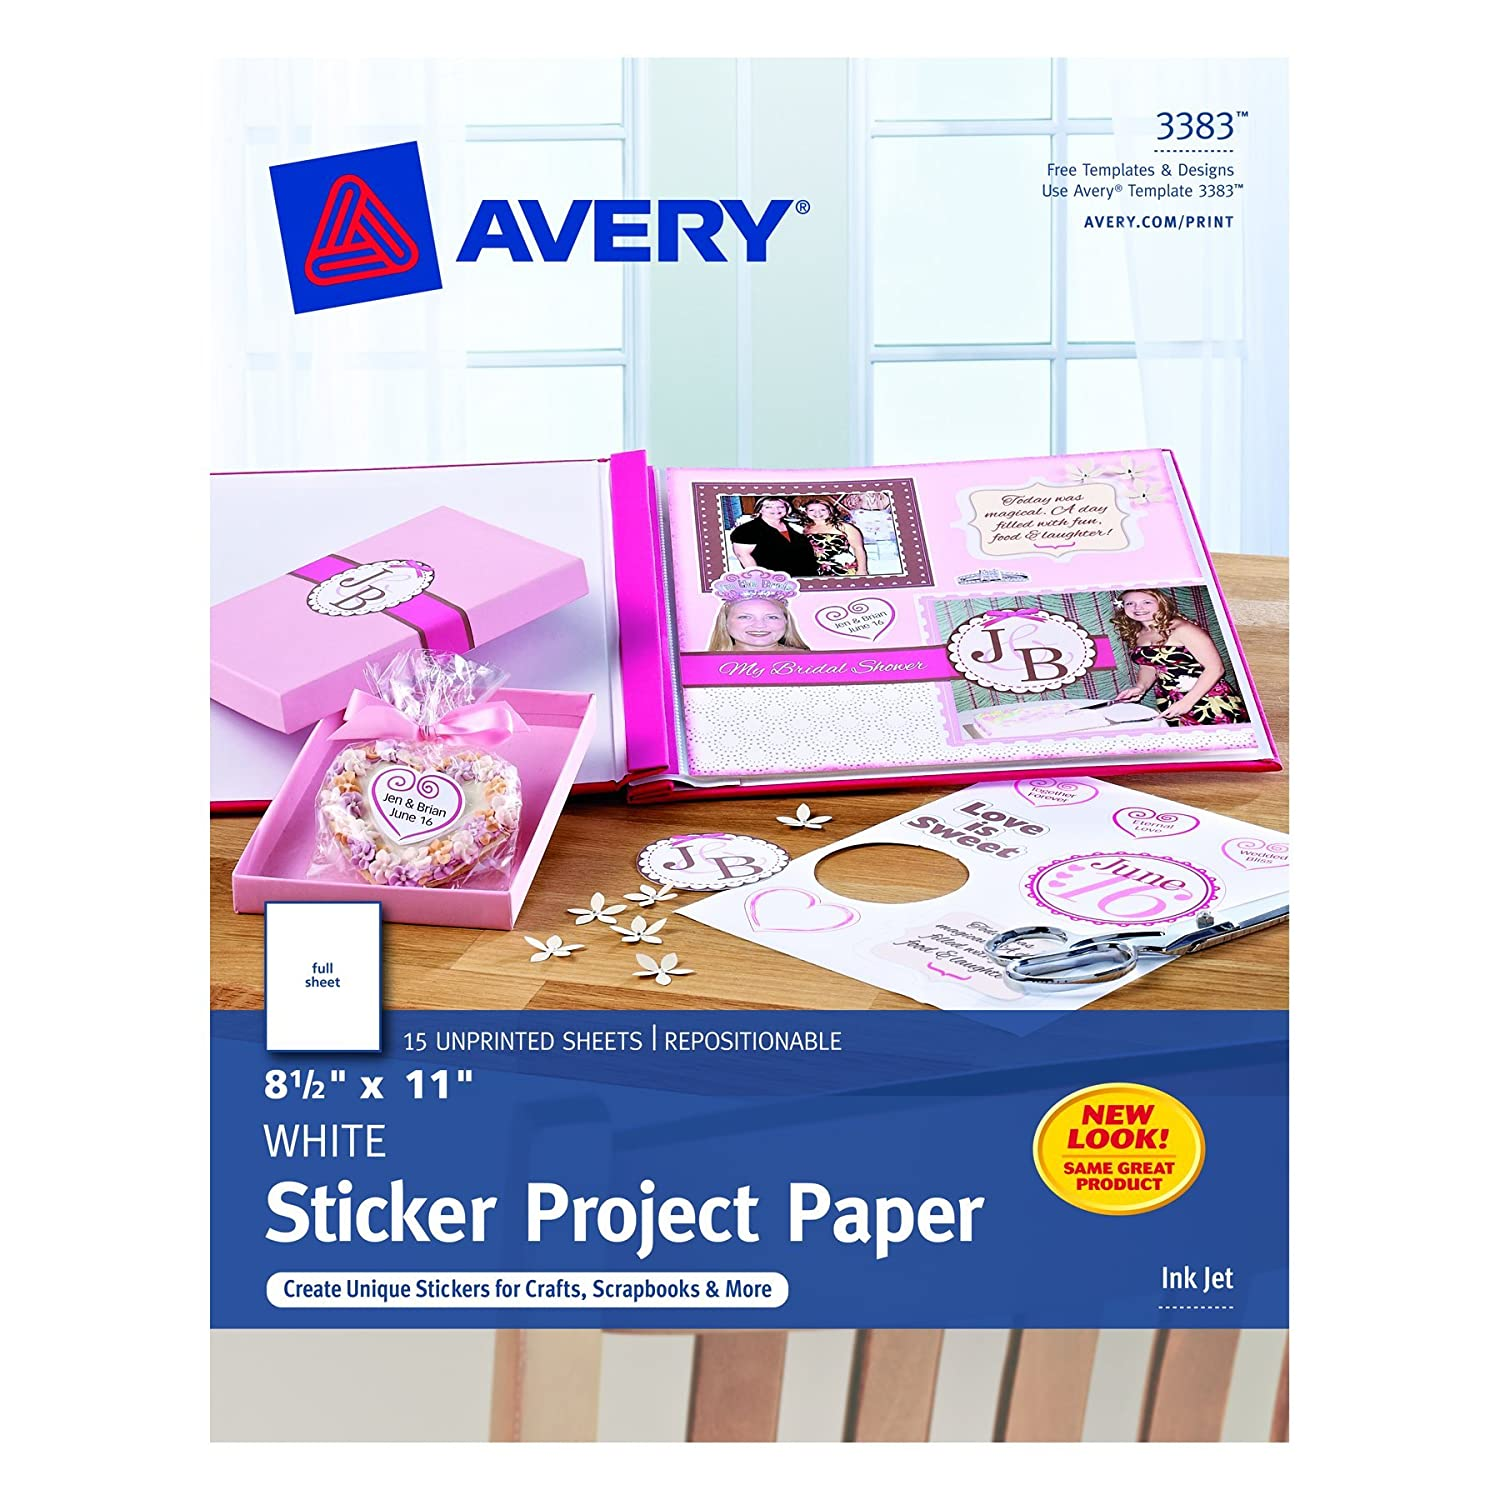 sticker paper Stickers pens and paper stickers professionally designed and printed pens of all kinds to promote your business and/or add to gift baskets and giveaways paper goods - notebooks, pads.